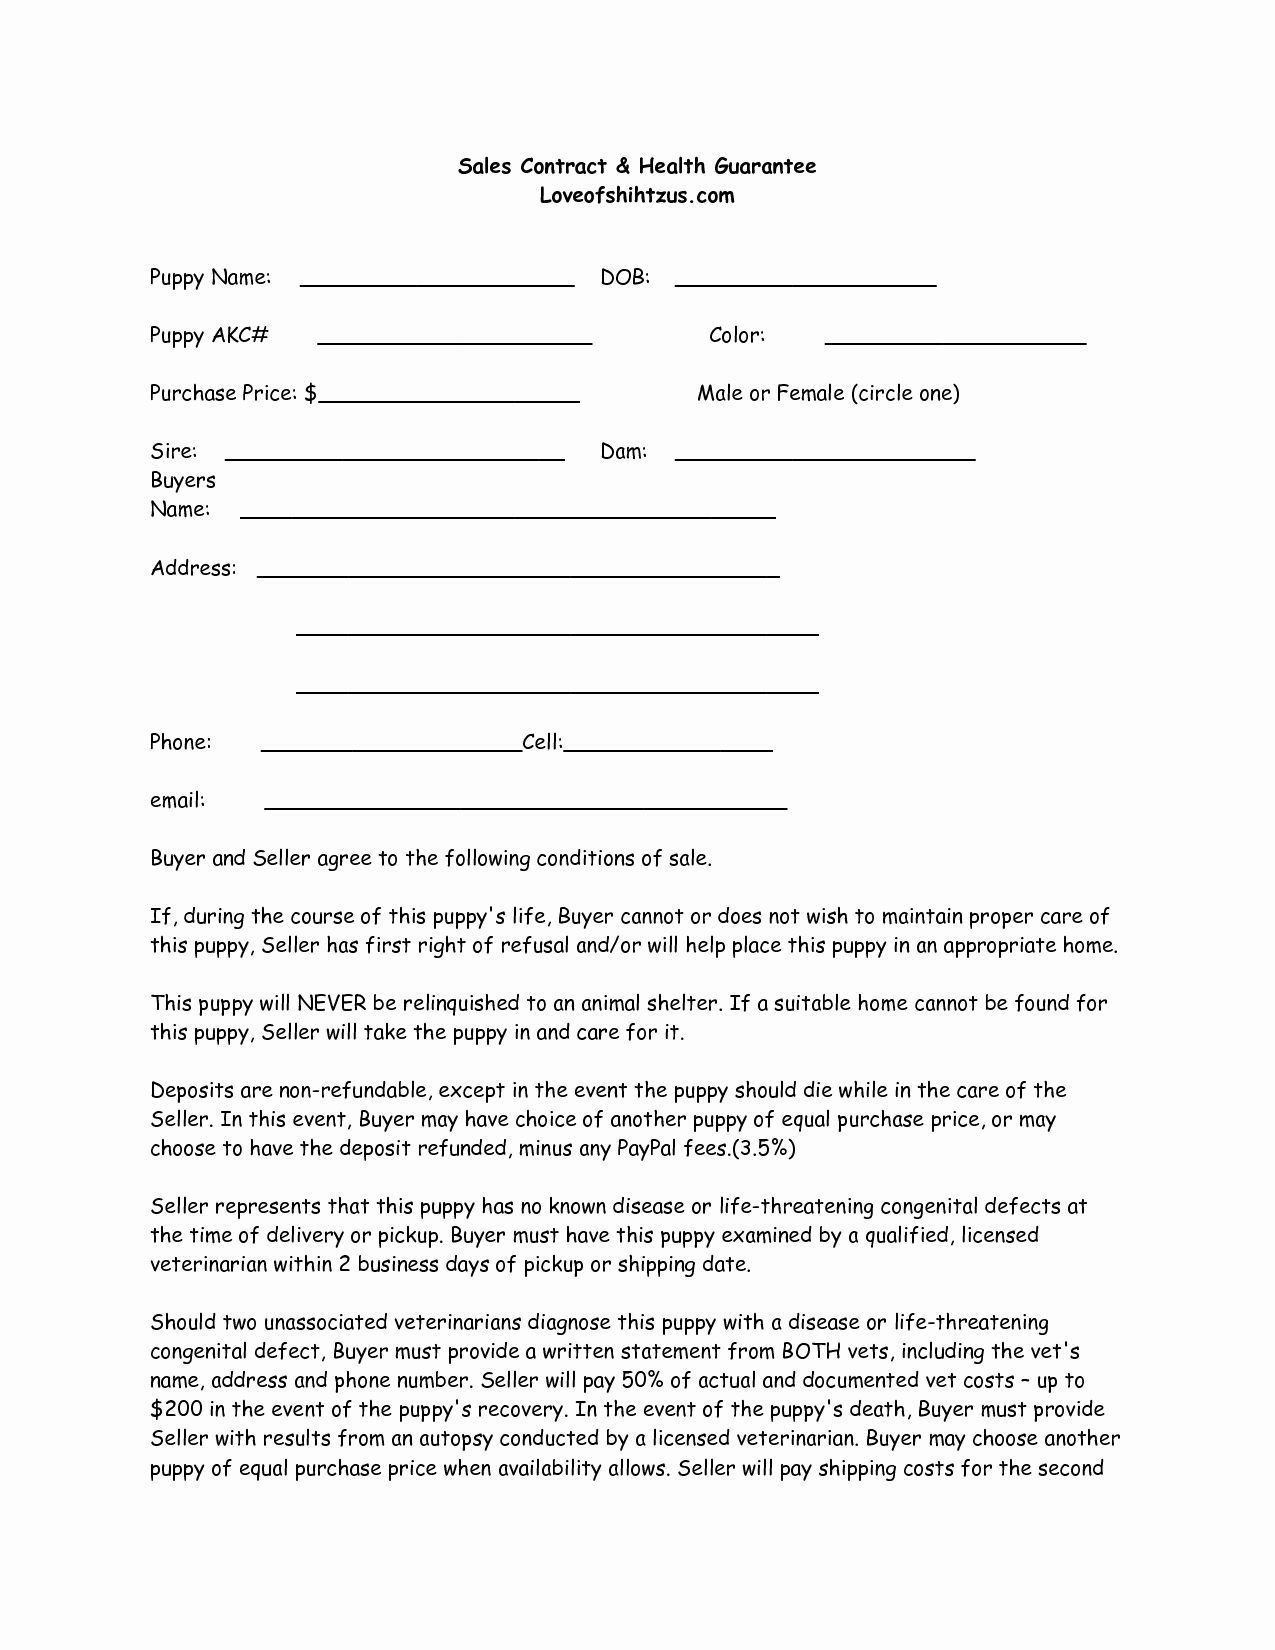 Dog Training Contract Template Awesome Puppy Sale Contract Template Success